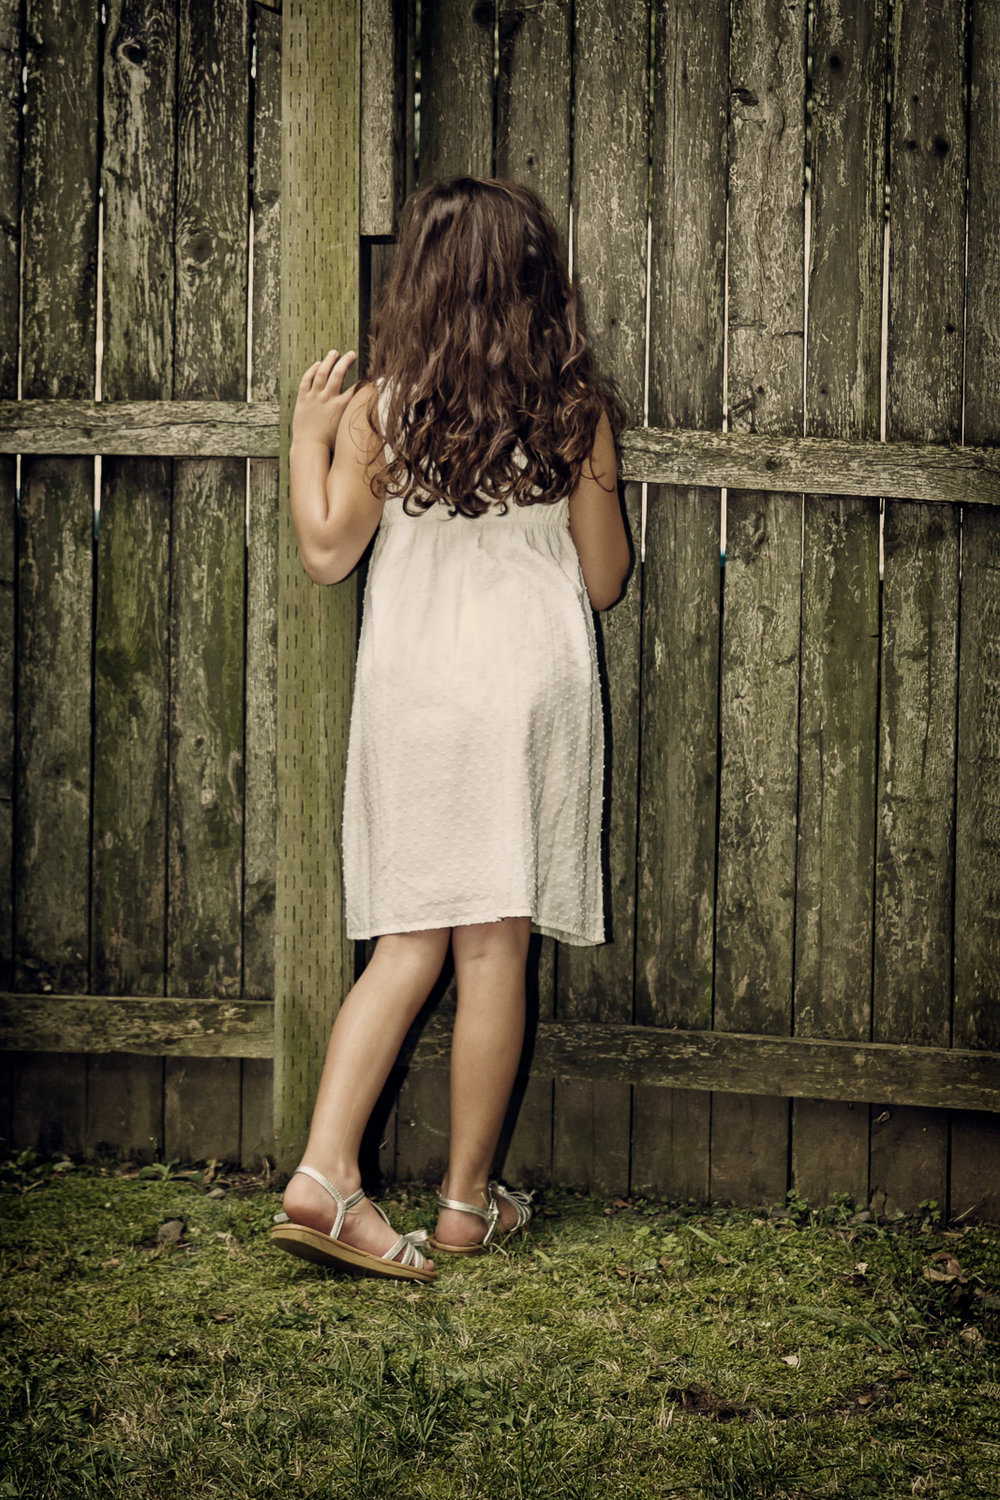 little girl peeking in the fence-Edit.jpg